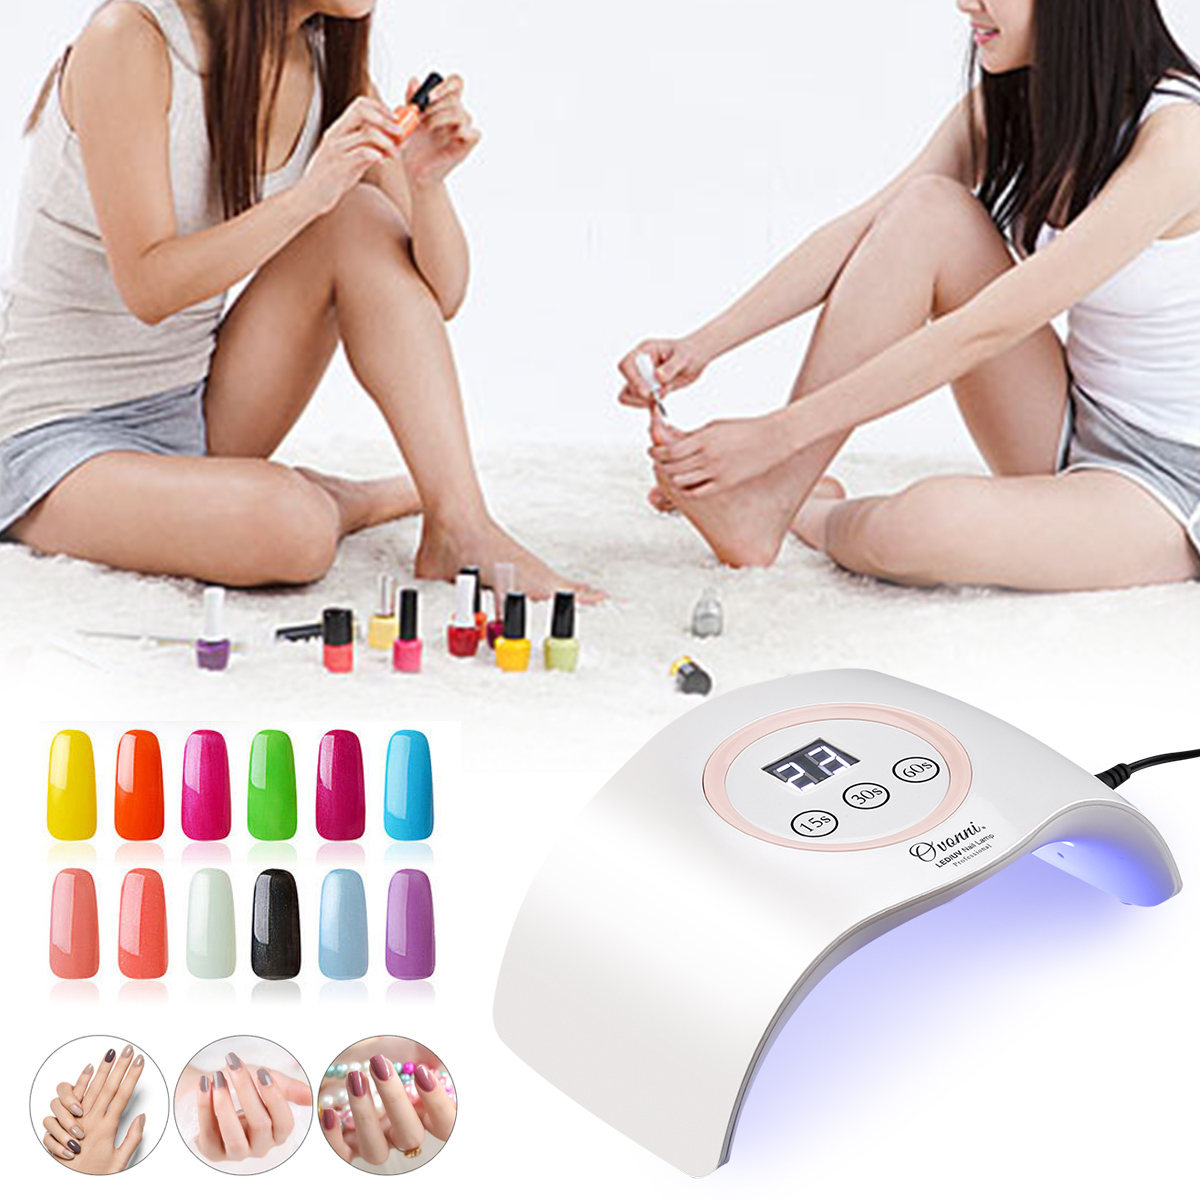 Ovonni 9X 24WLED UV Nail Dryer Curing Lamp For Fingernail & Toenail Gels Based Polishes UV Gel Nail Art Lamp With Sensor